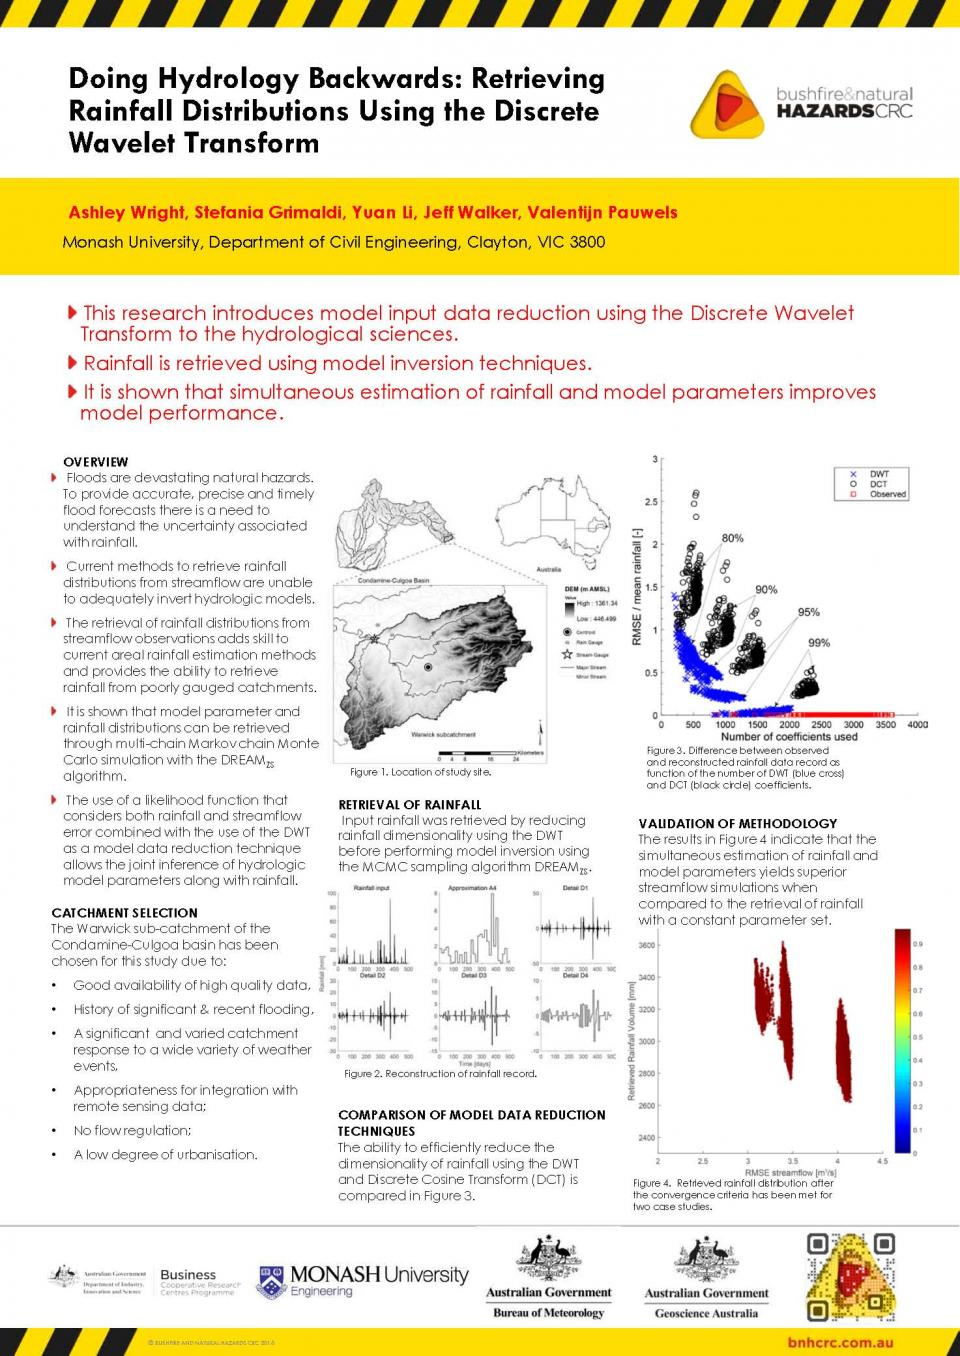 Ashley Wright Conference Poster 2016